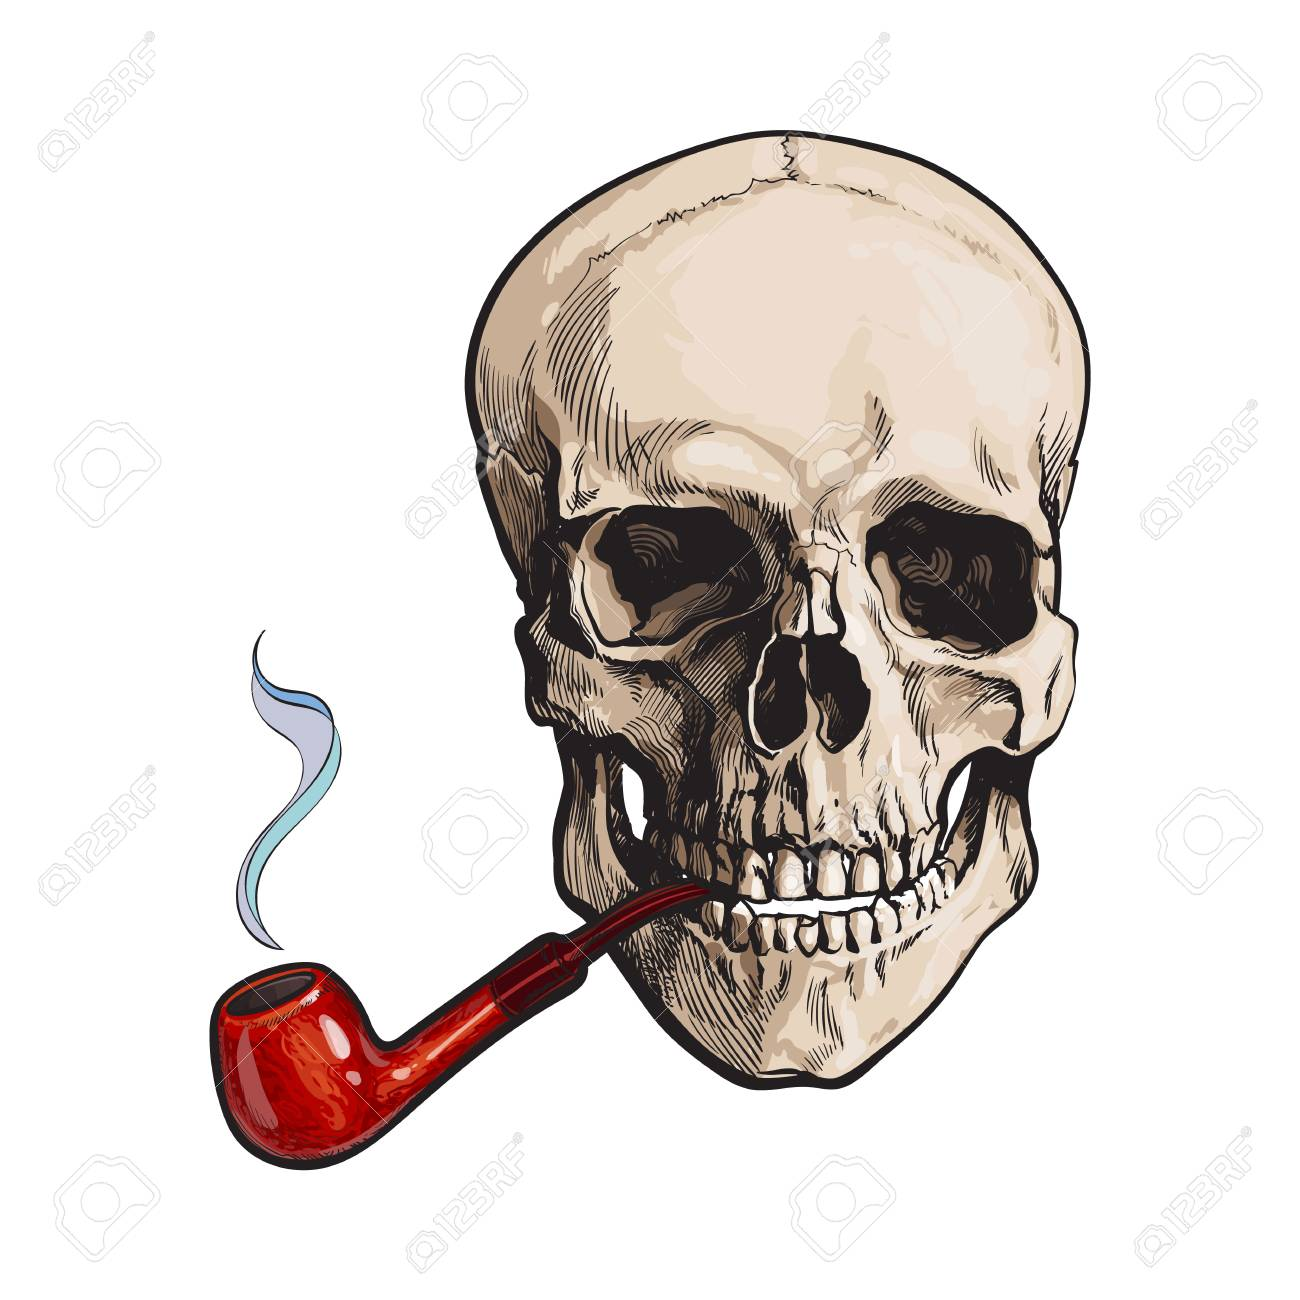 Skull Smoking A Cigar - HD Wallpaper Pictures